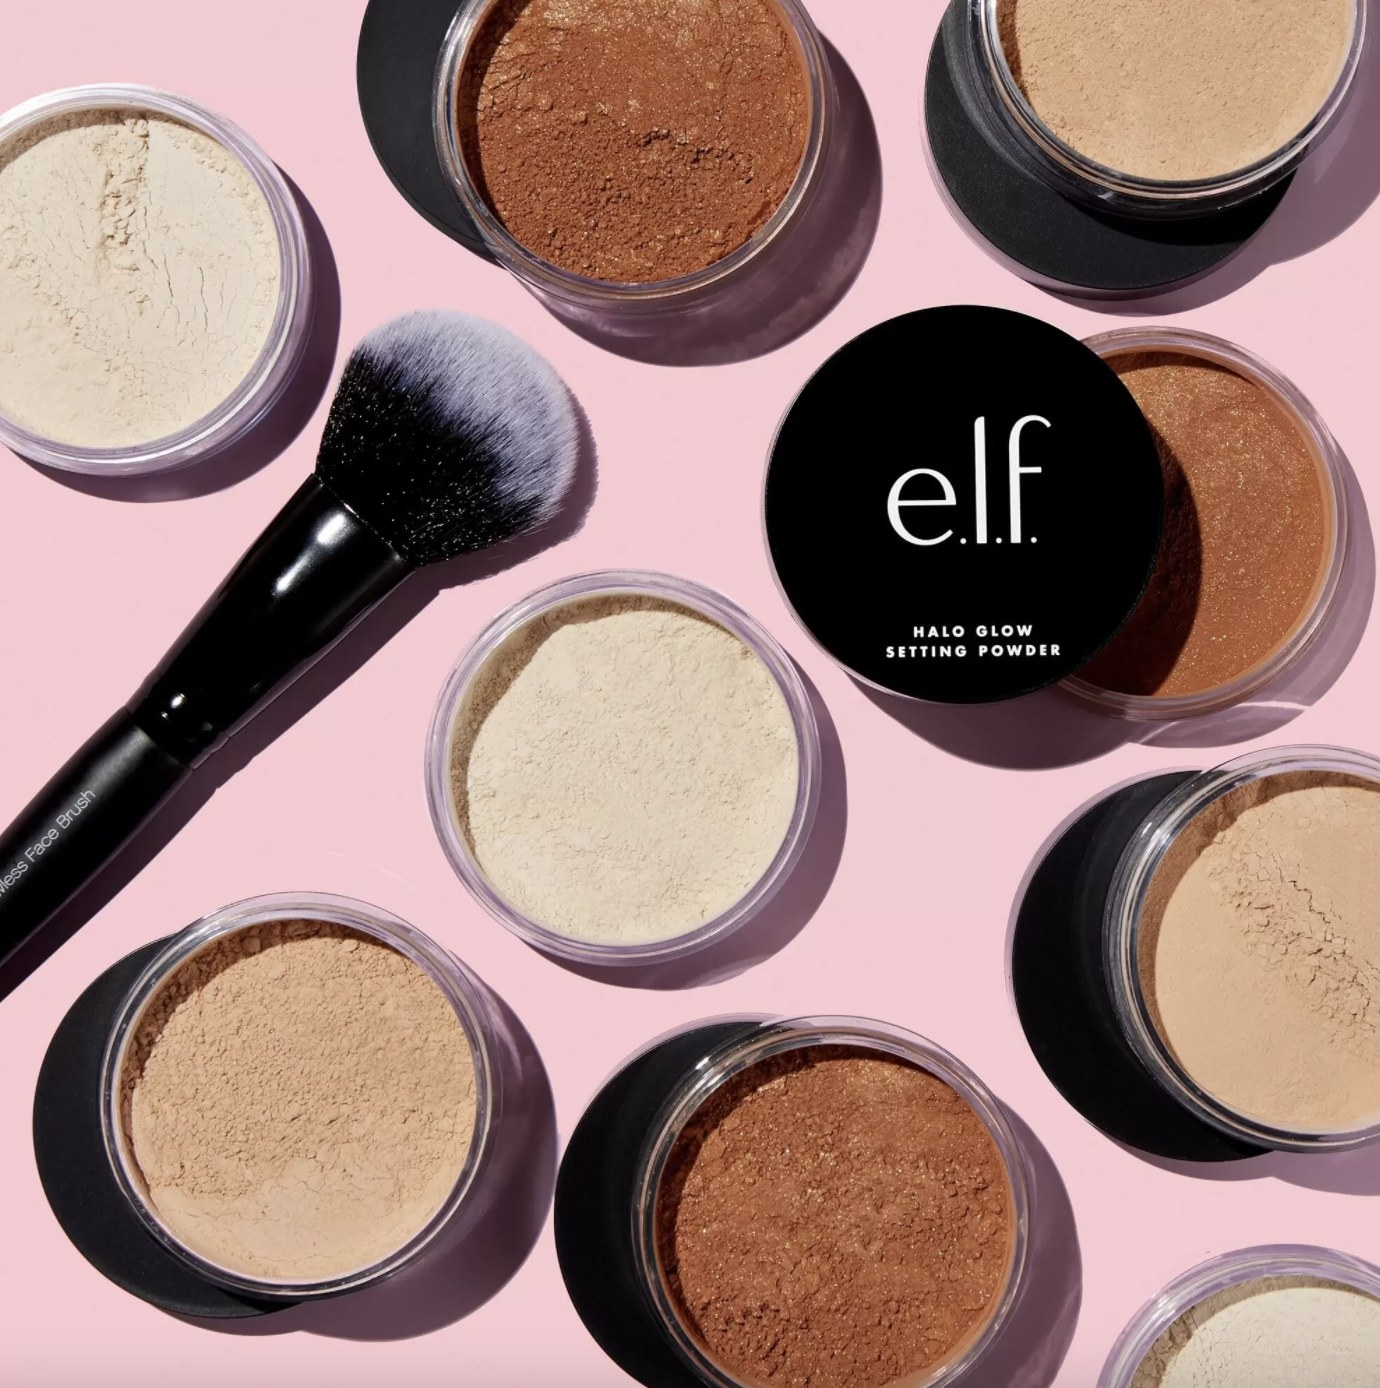 A set of setting powders in different shades with a makeup brush